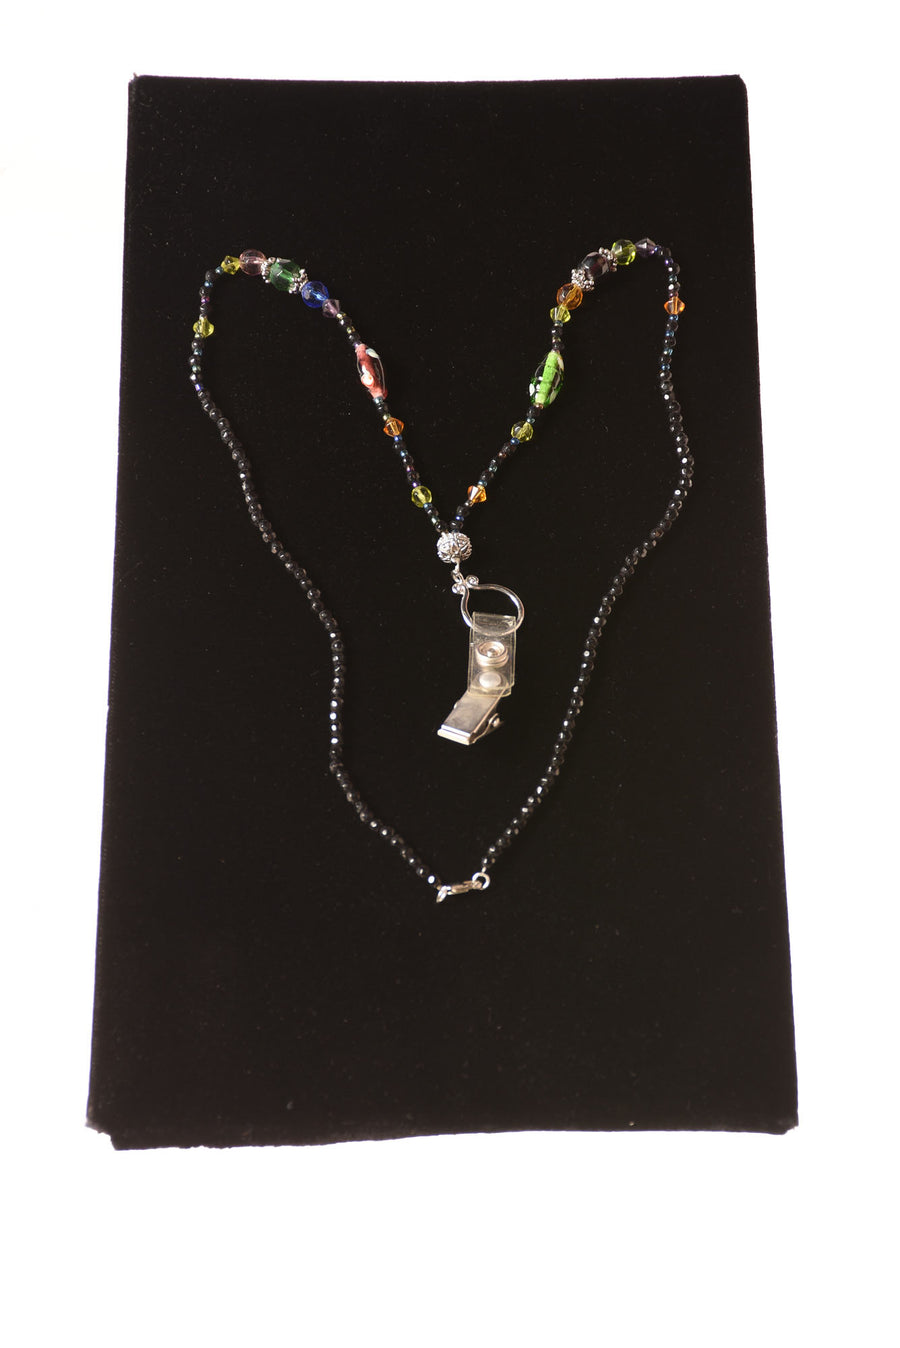 USED No Brand Women's Necklace N/A Multi-Color